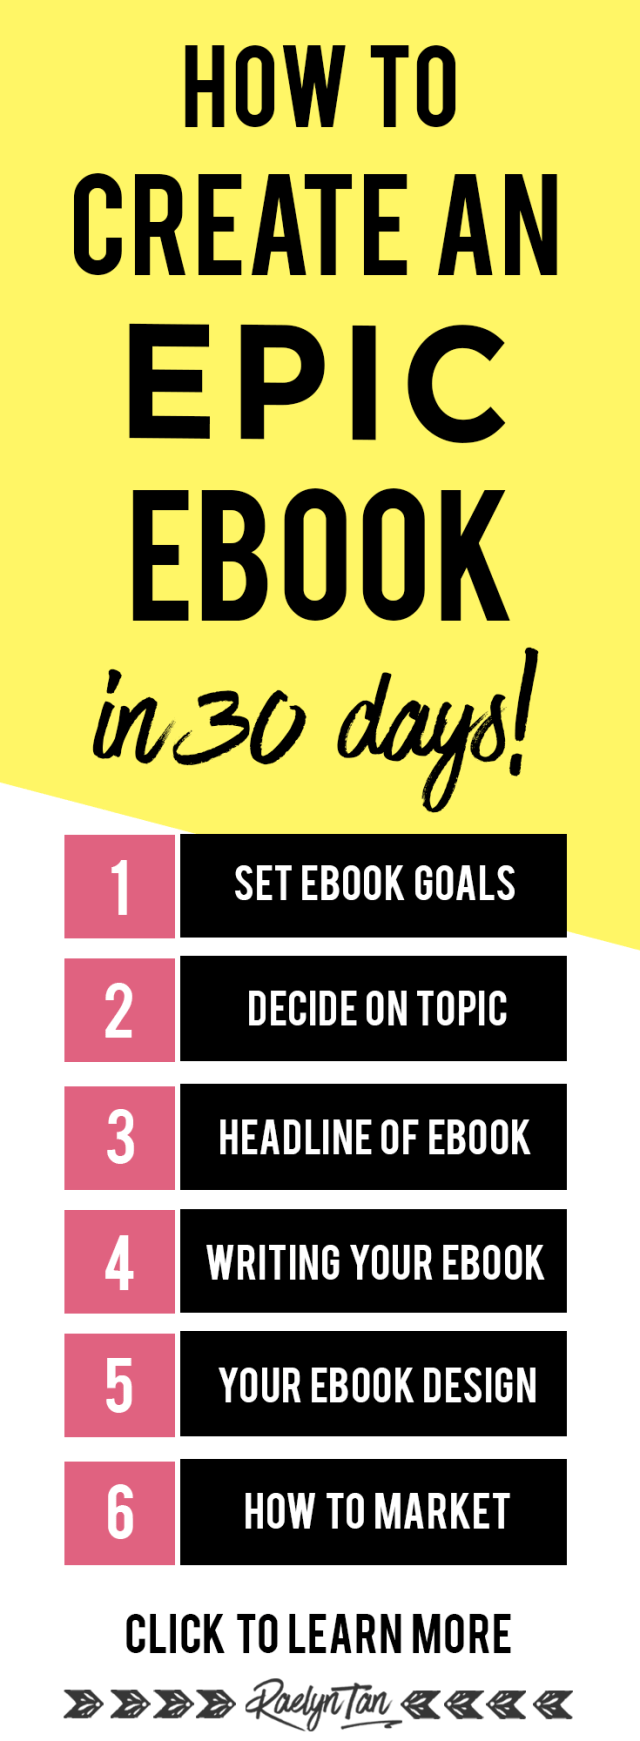 How to Write an Epic Ebook in 23 Days (Step-by-step)